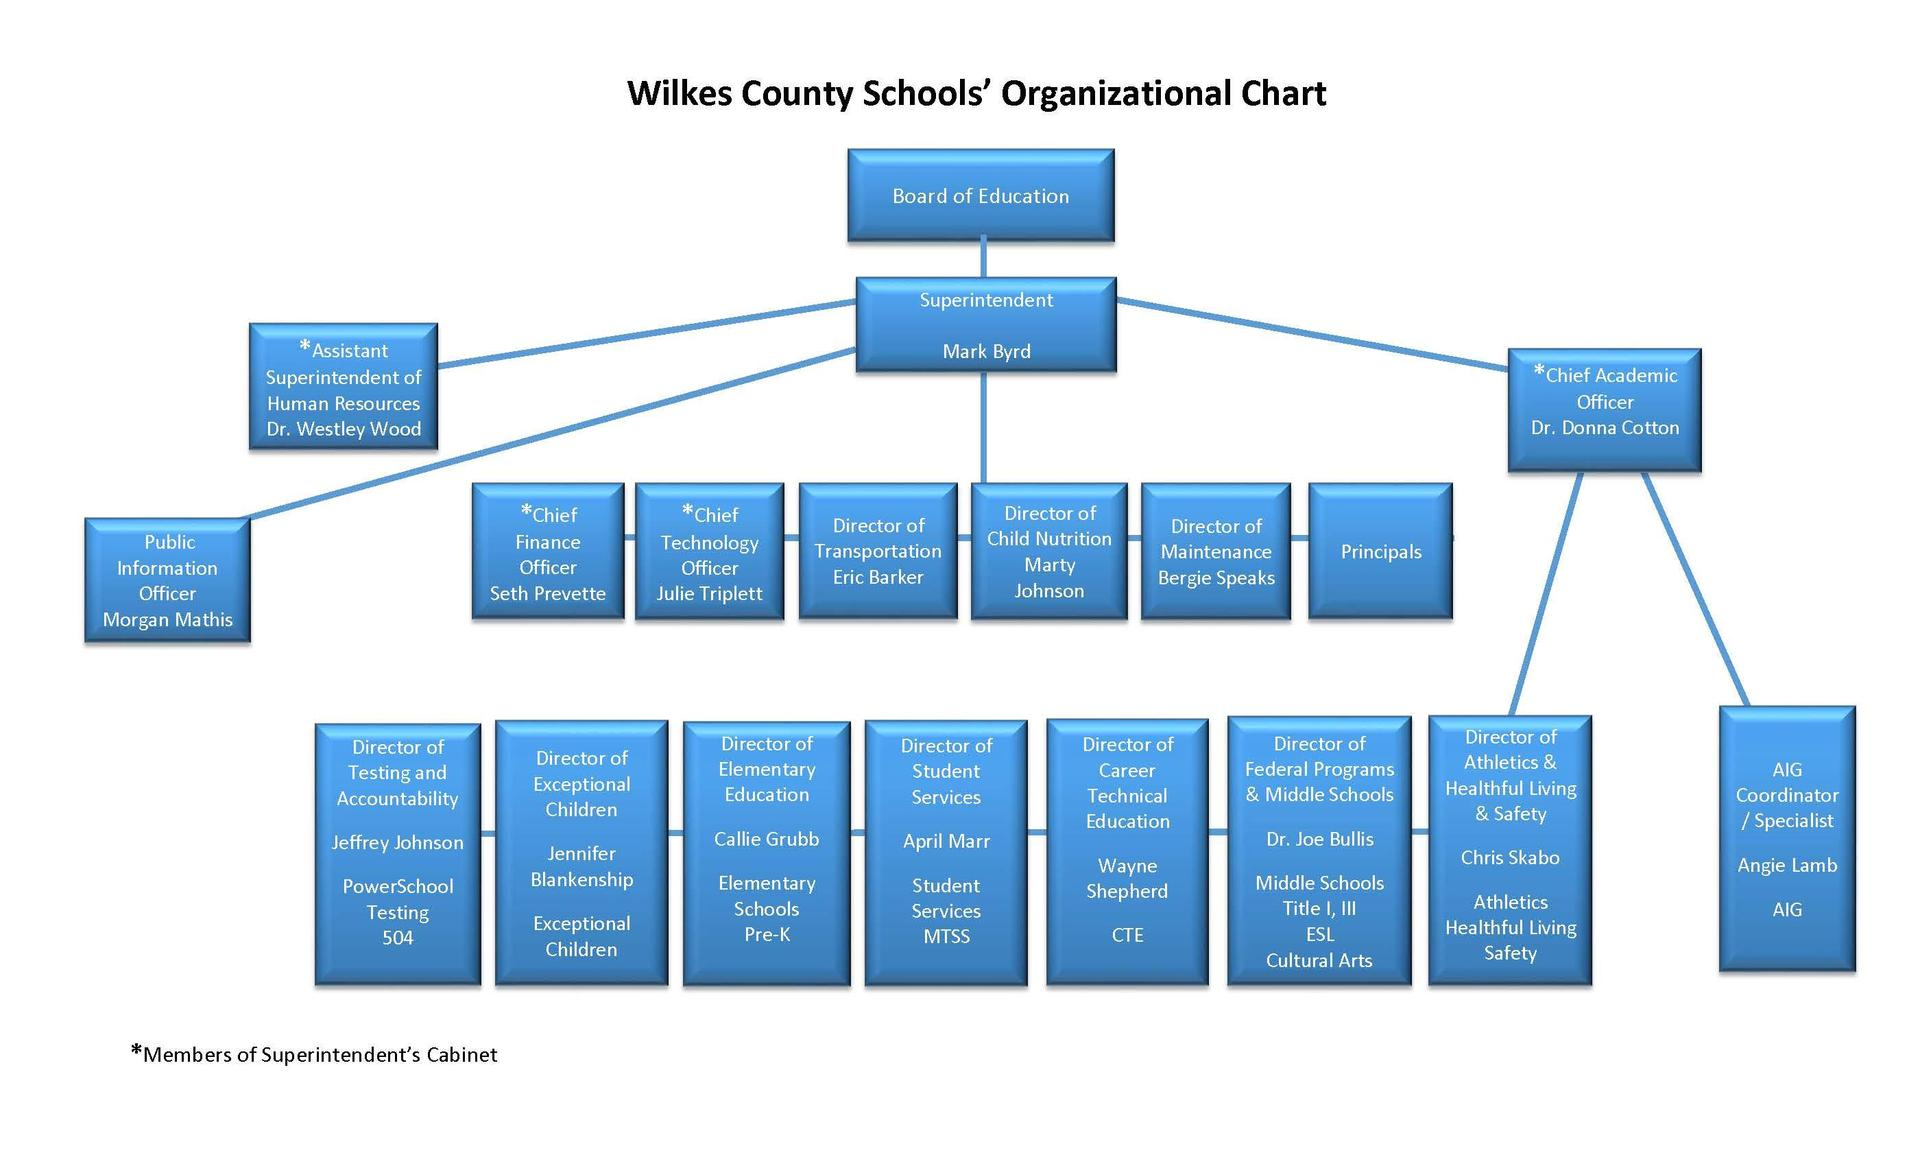 Wilkes County Schools Organizational Chart